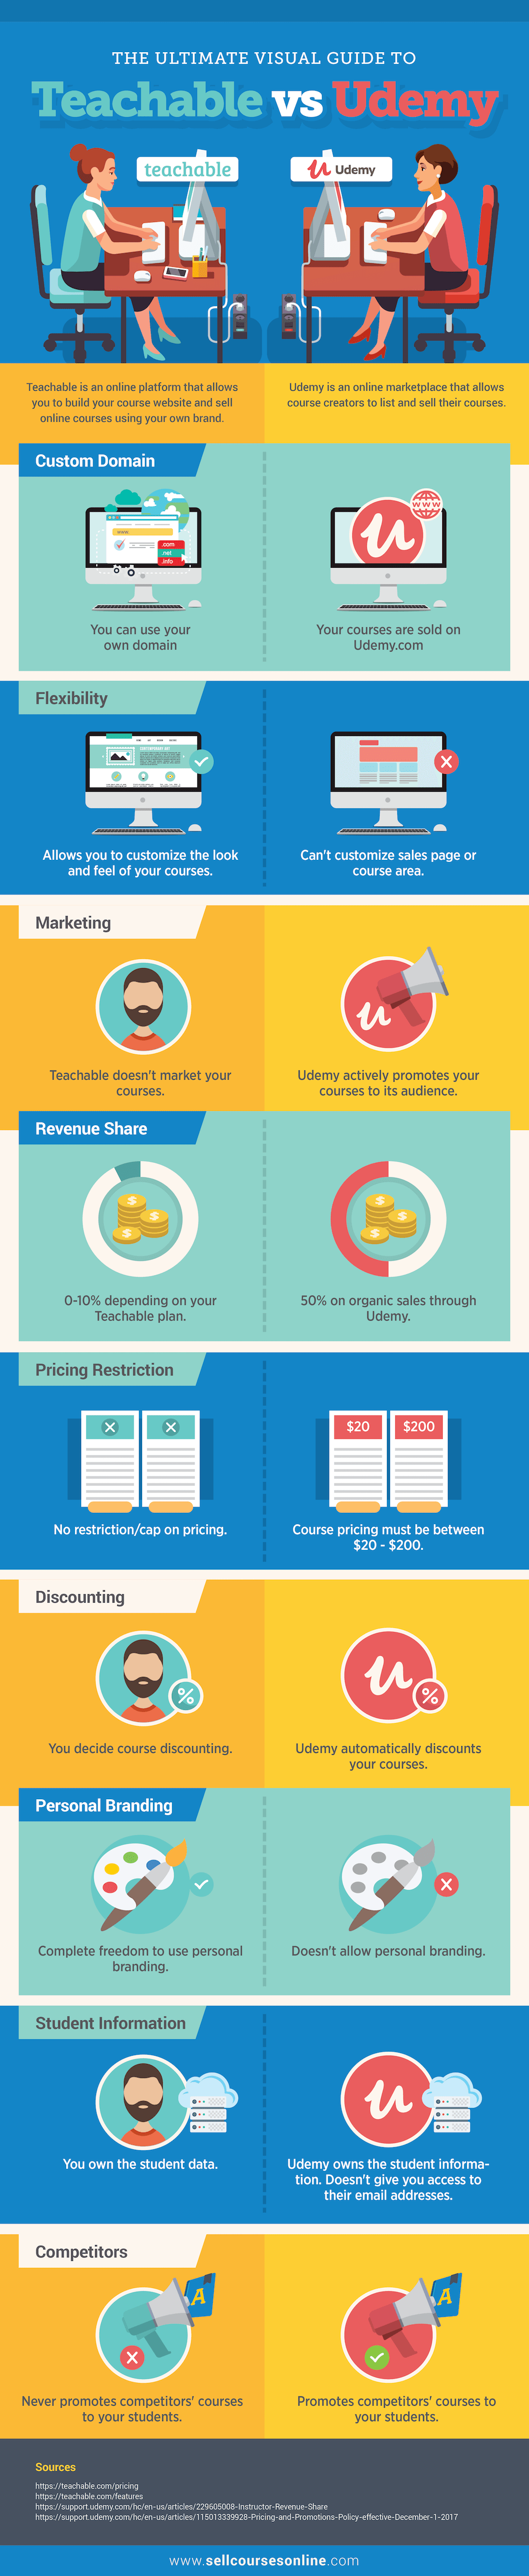 The Ultimate Visual Guide To Teachable Vs Udemy Infographic